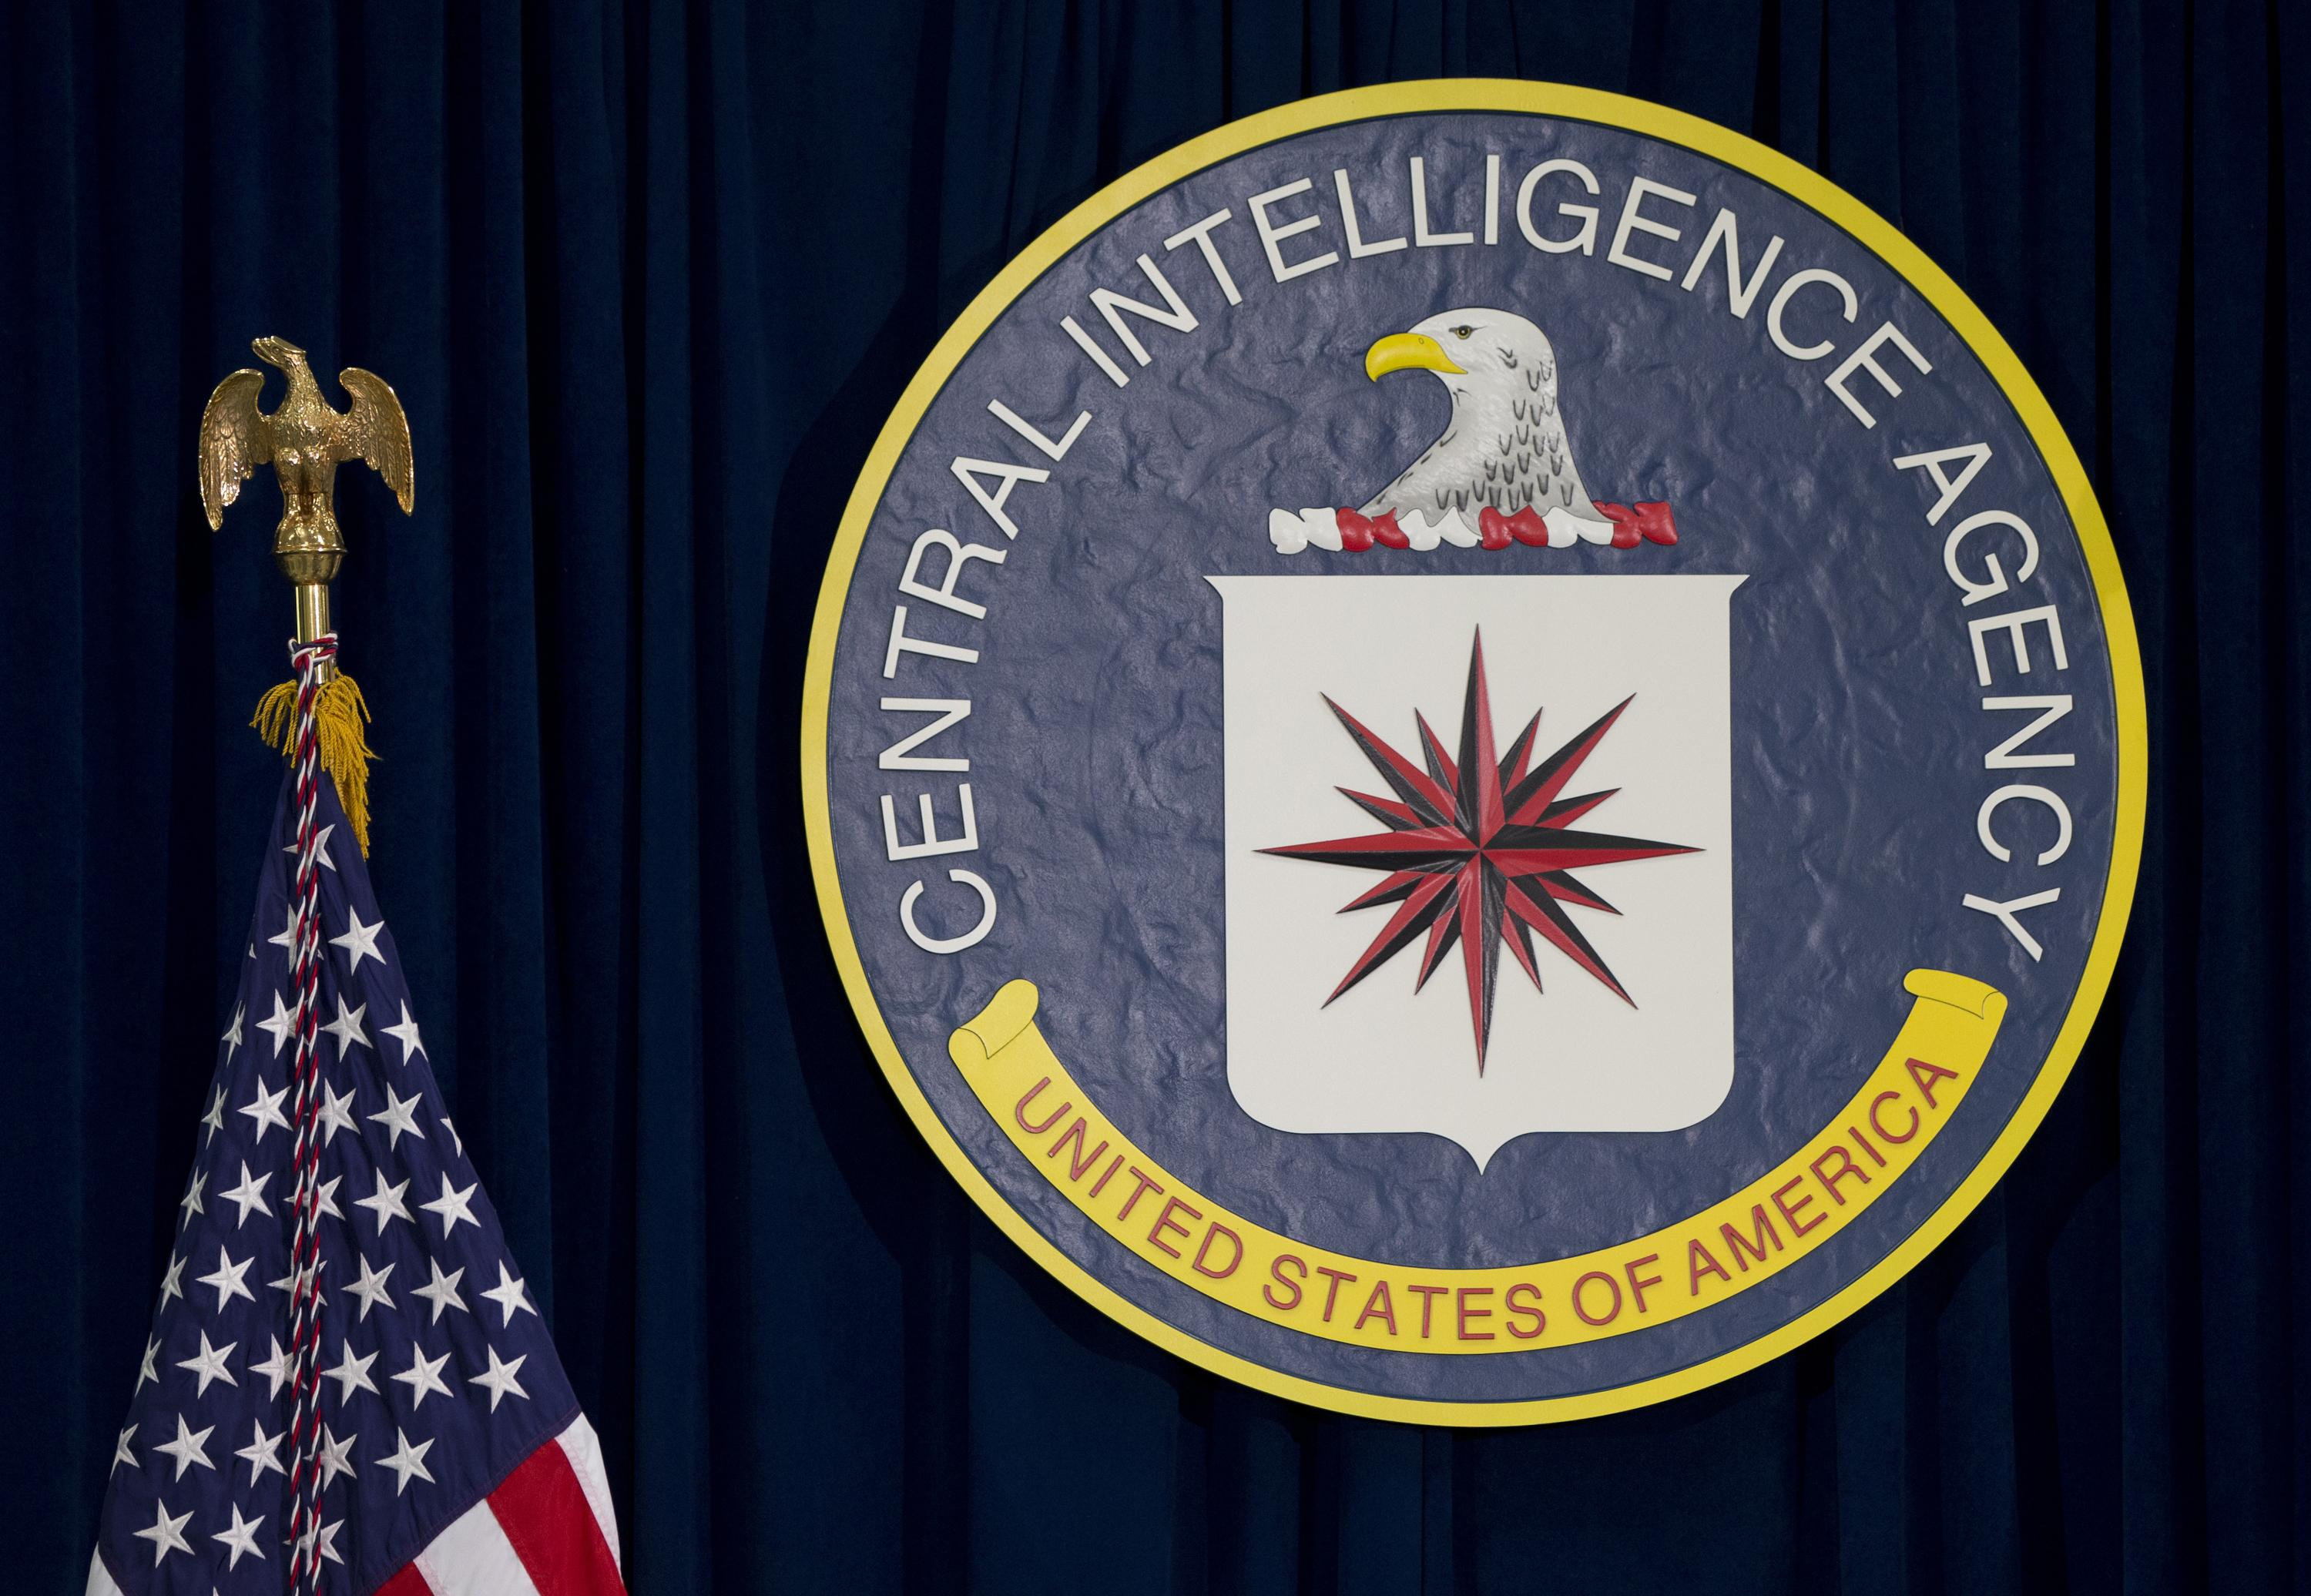 Lawyer for ex-CIA engineer charged with espionage asks agency to speed 'Vault 7' Wikileaks review